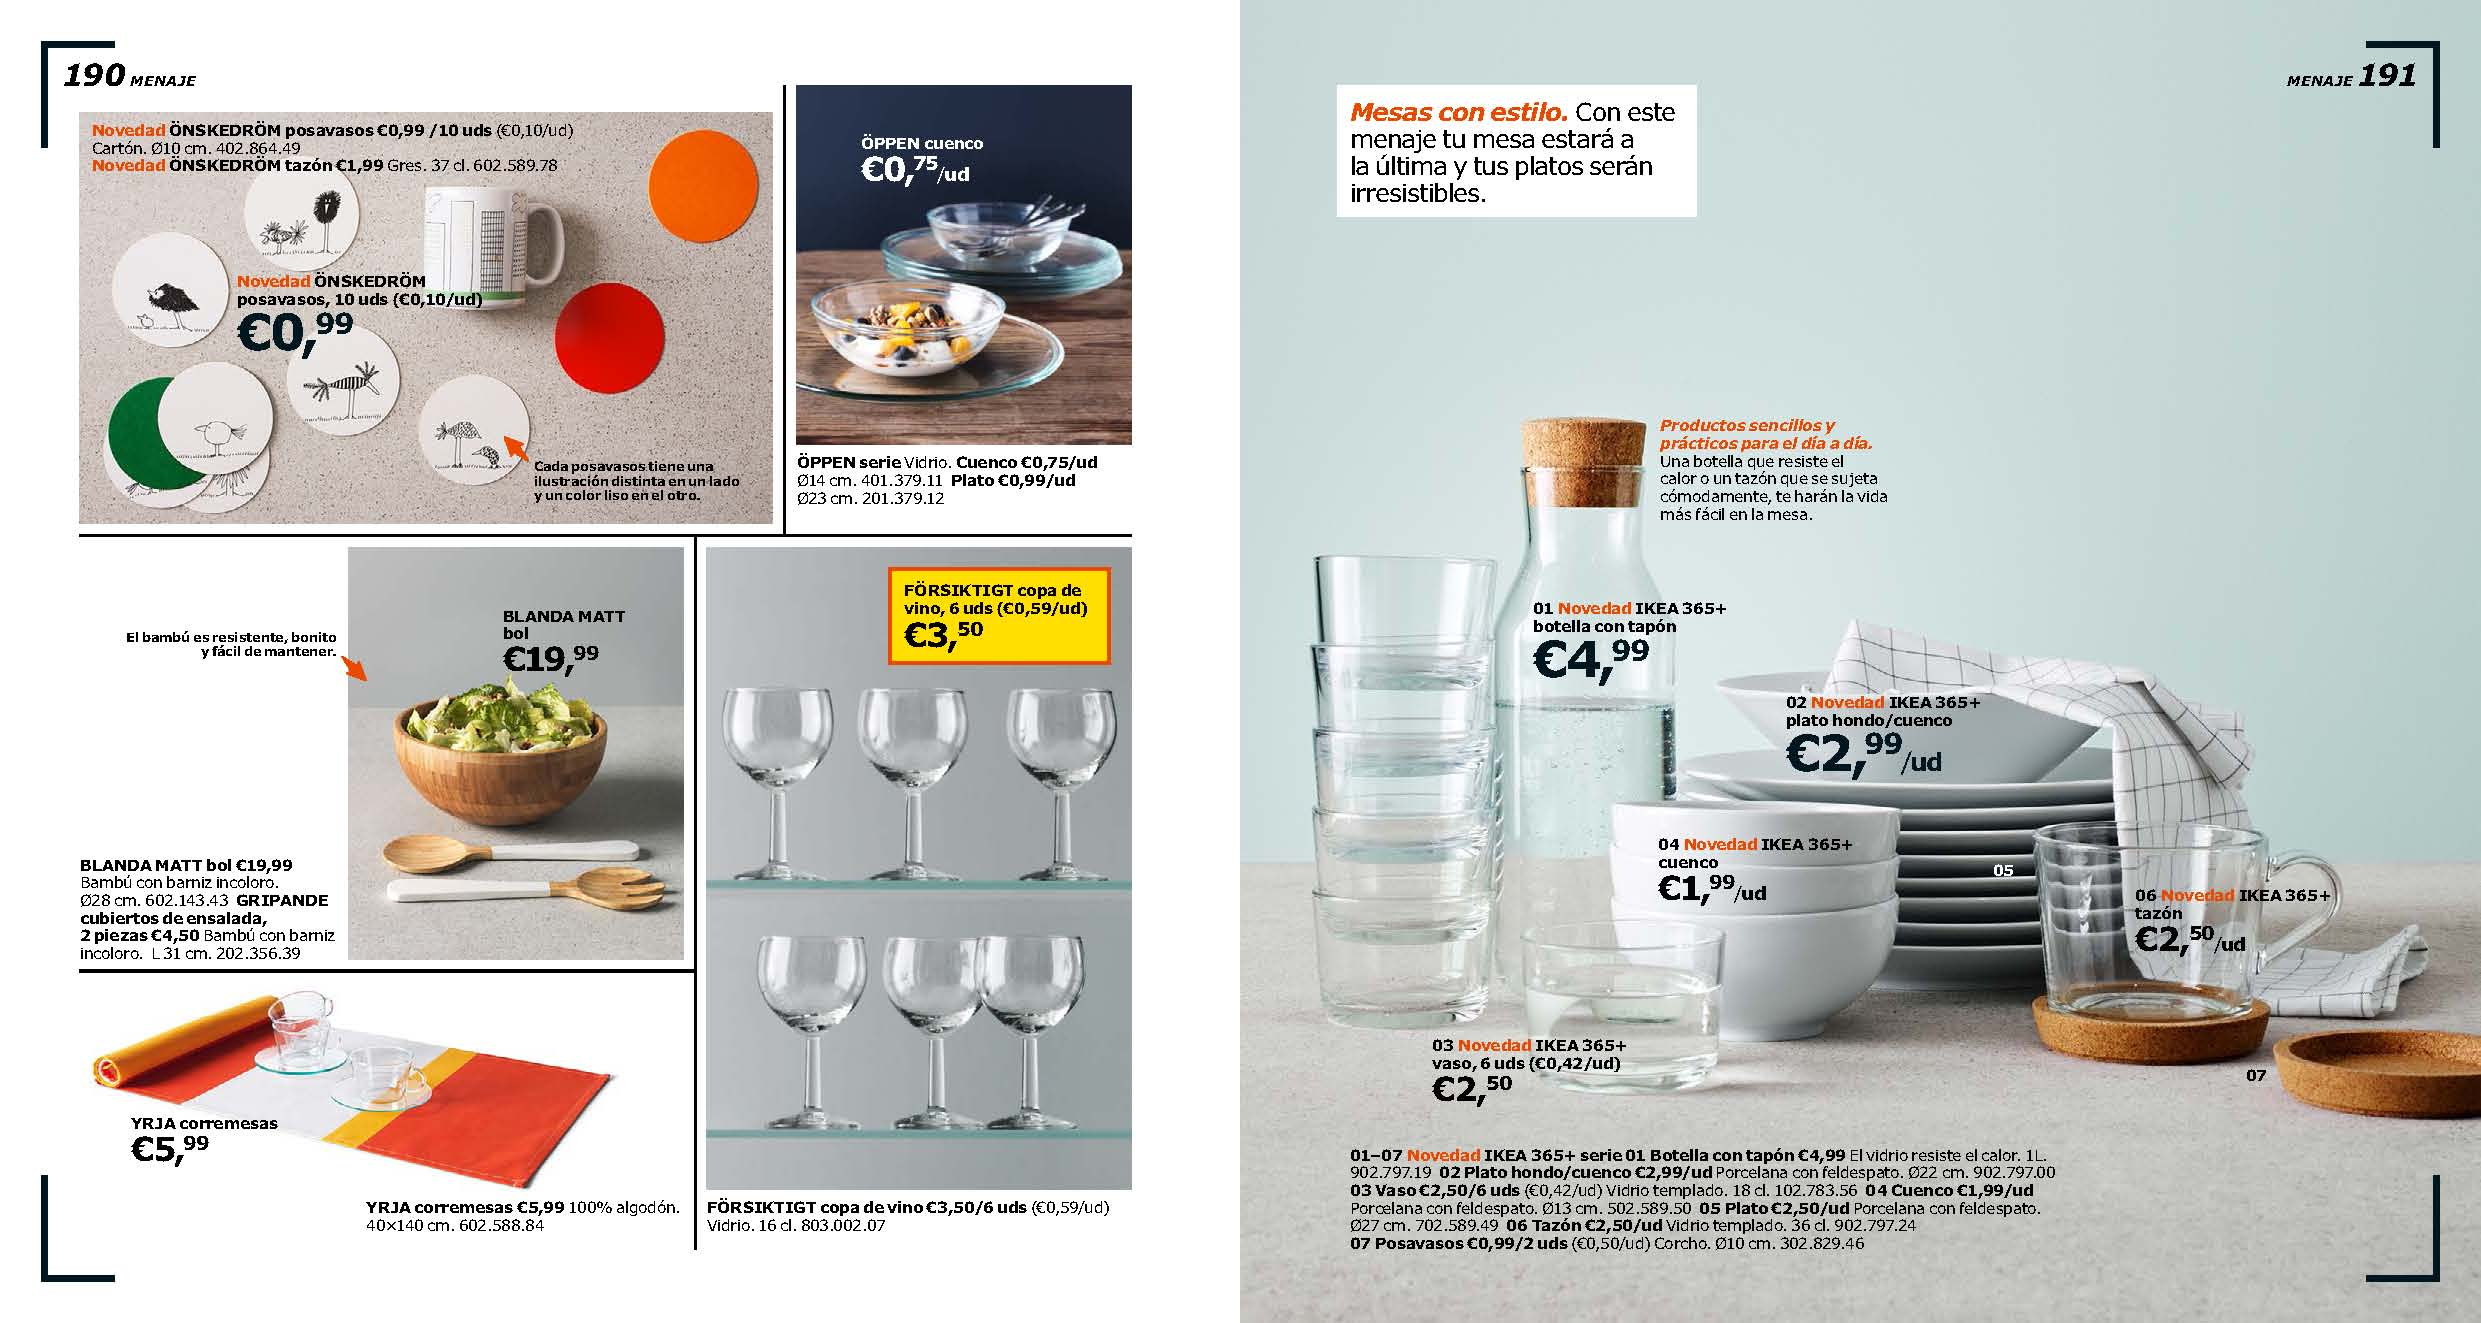 catalog decorate with ikea 2016 es_Page_096